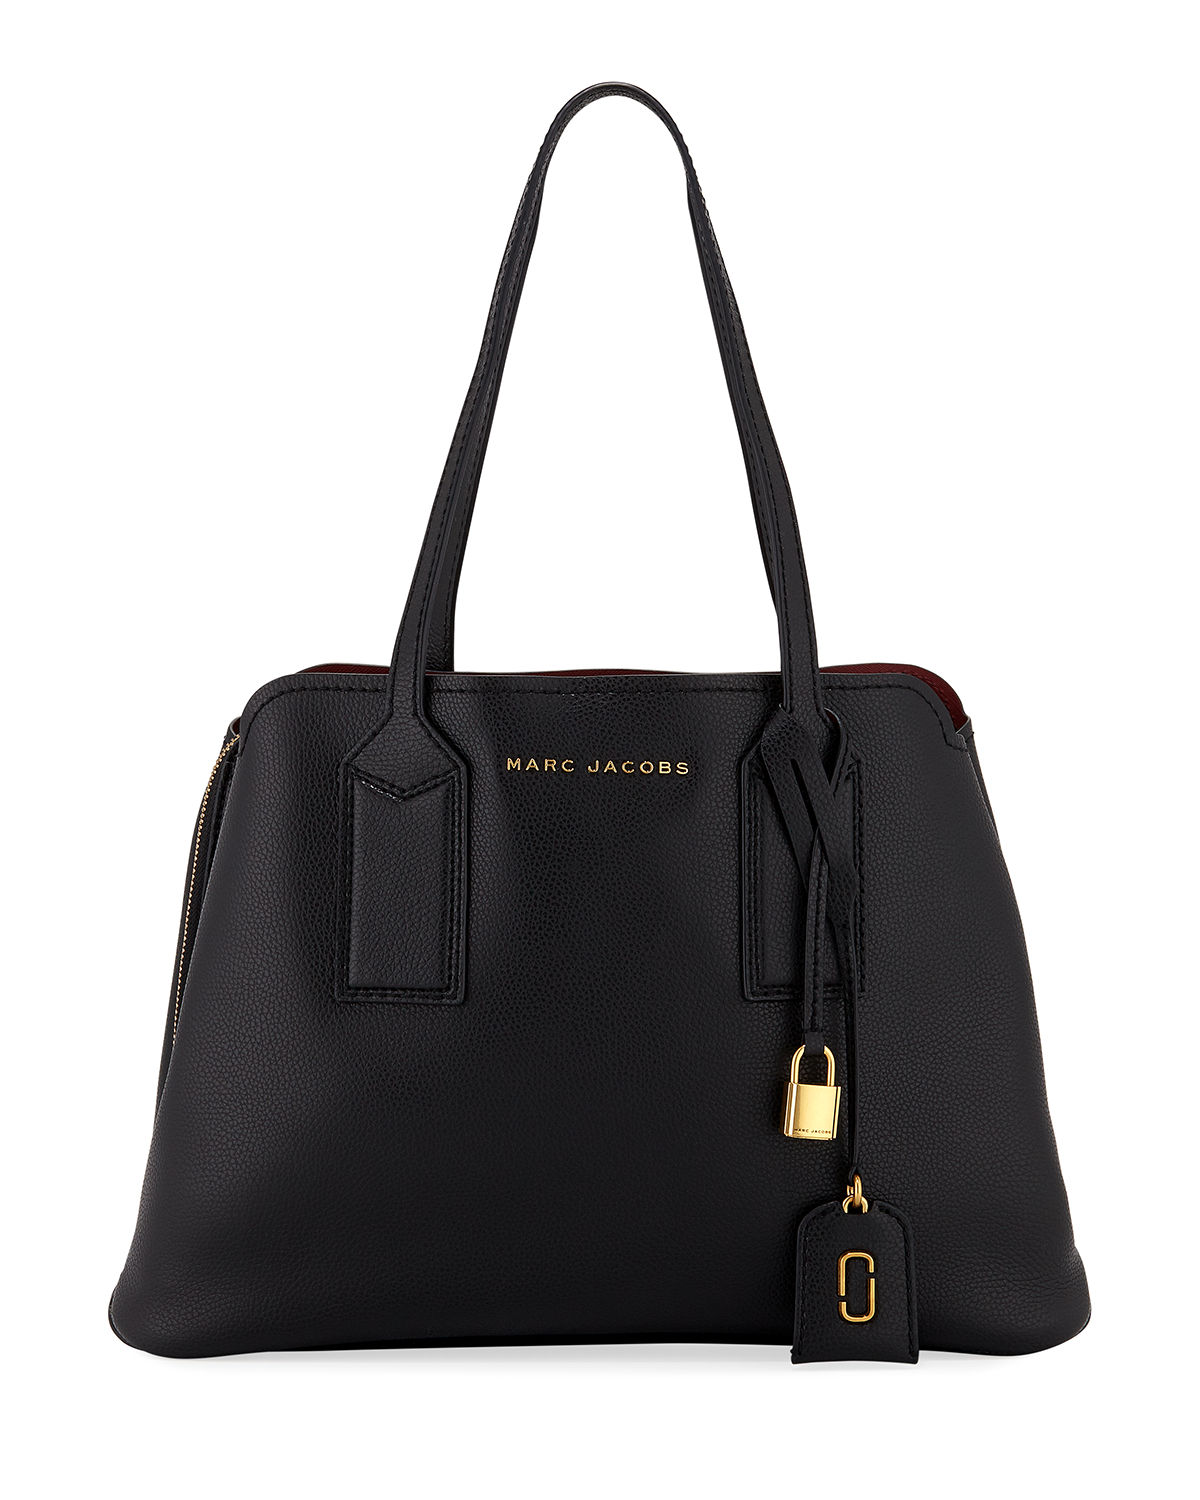 ffc7e37f6c0 Marc Jacobs The Editor Large Pebbled Leather Tote Bag | Neiman Marcus